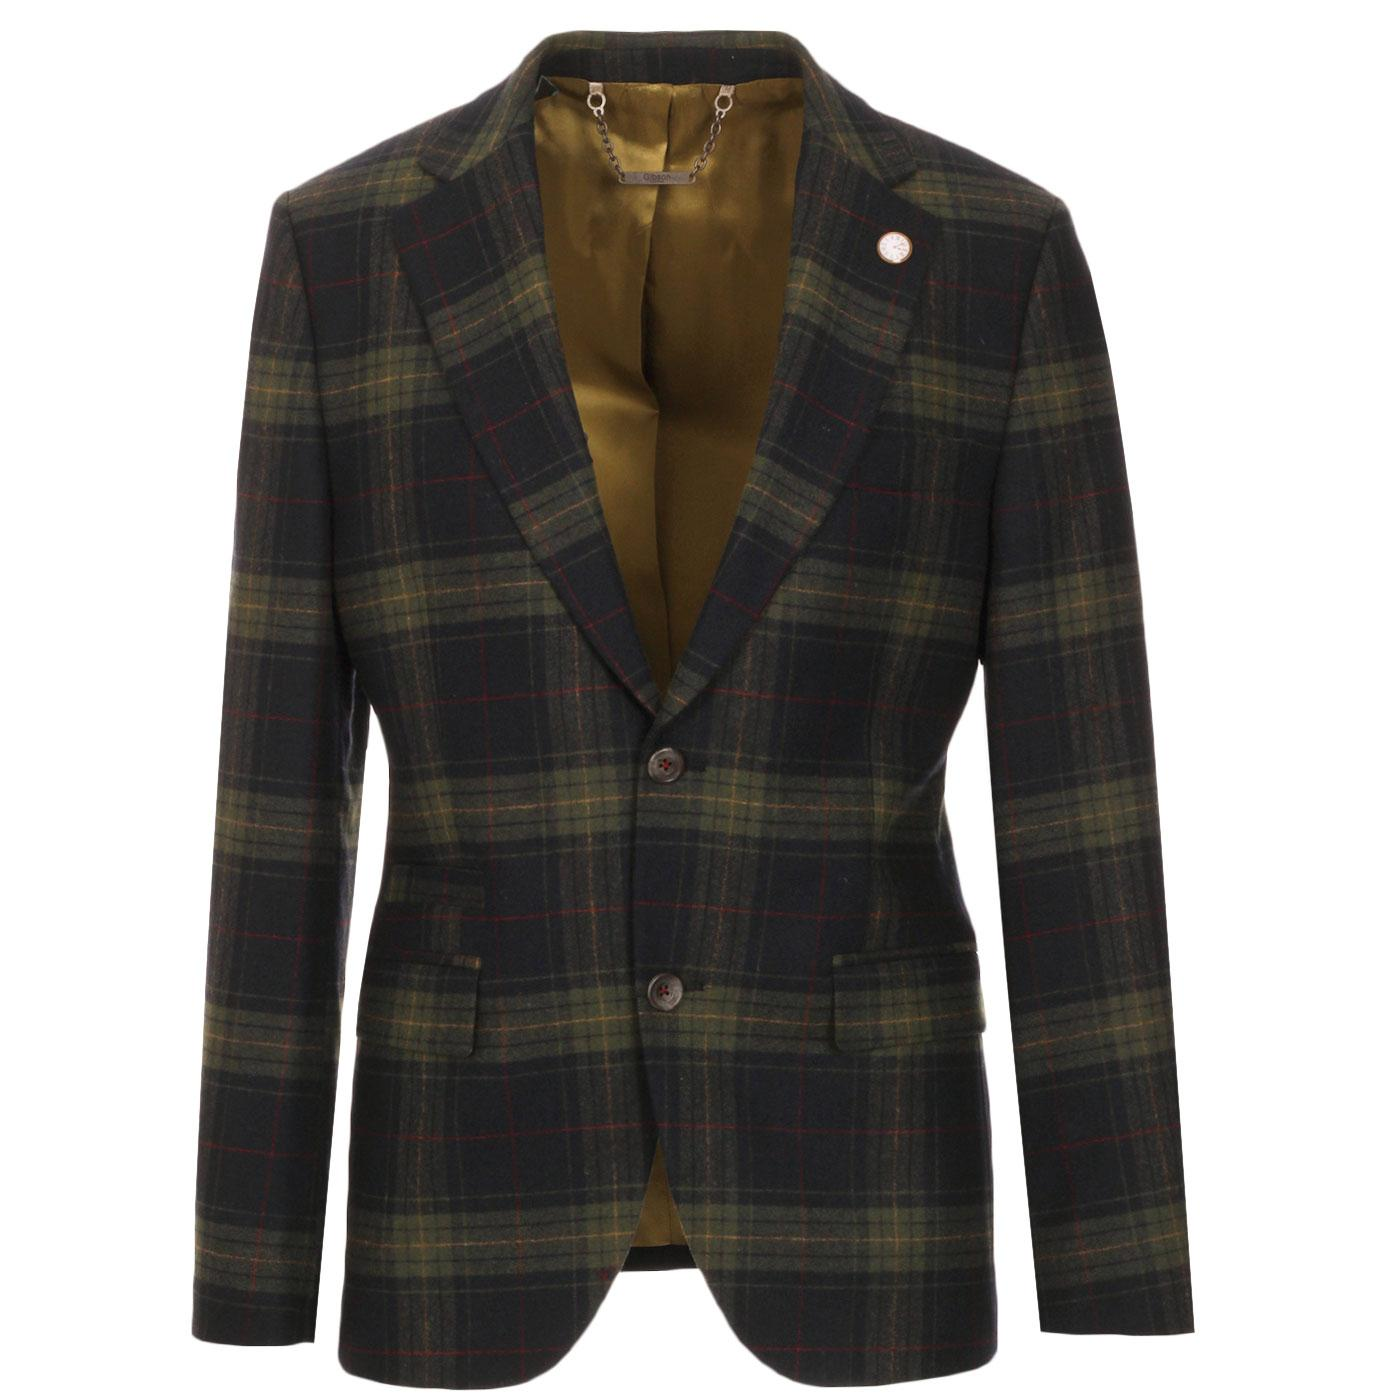 Towergate GIBSON LONDON Mod Tartan 2 Button Blazer